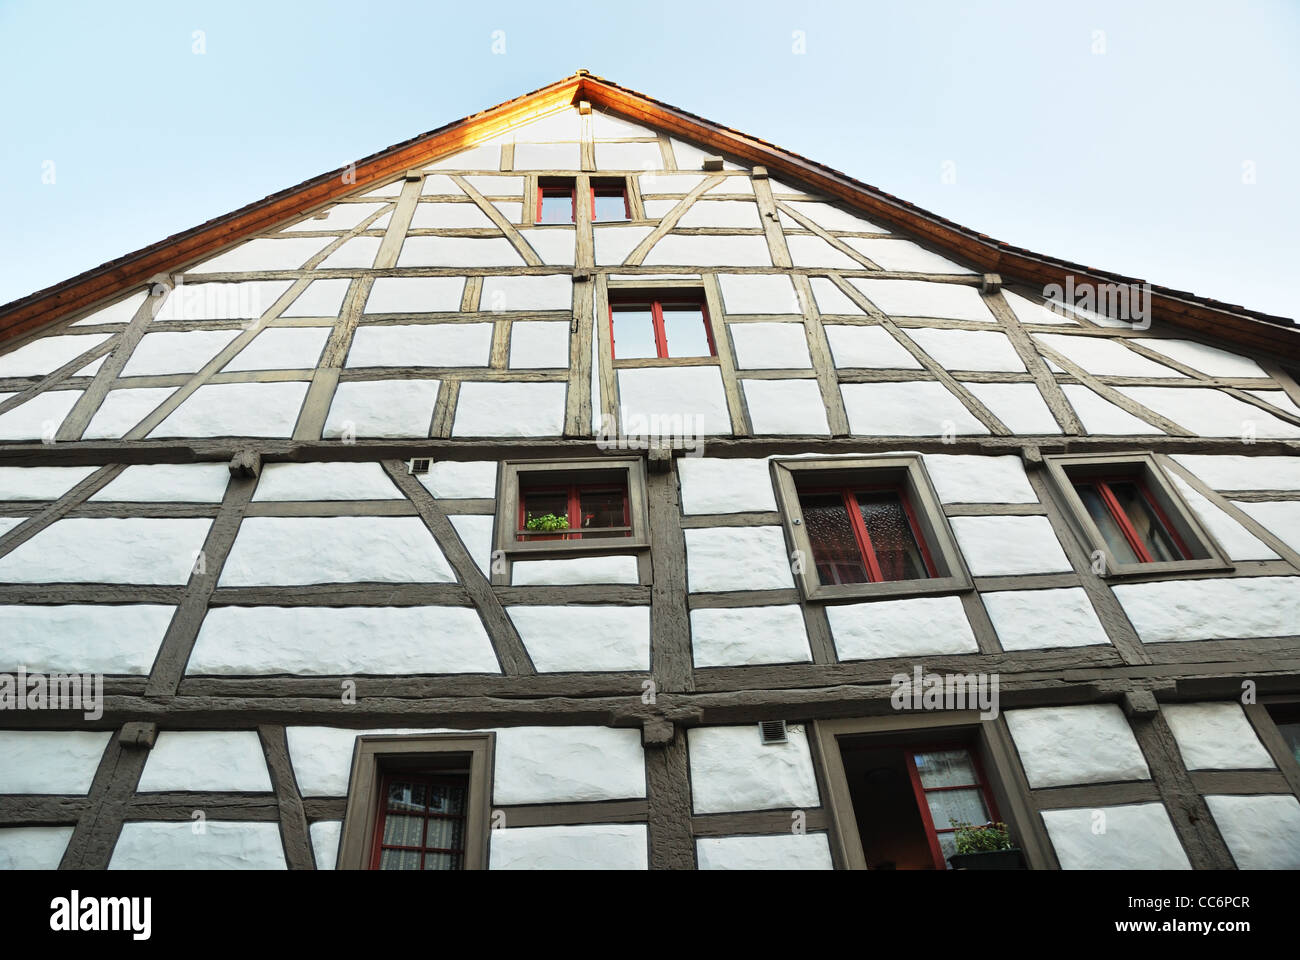 Ancient wall of fachwerk house. - Stock Image